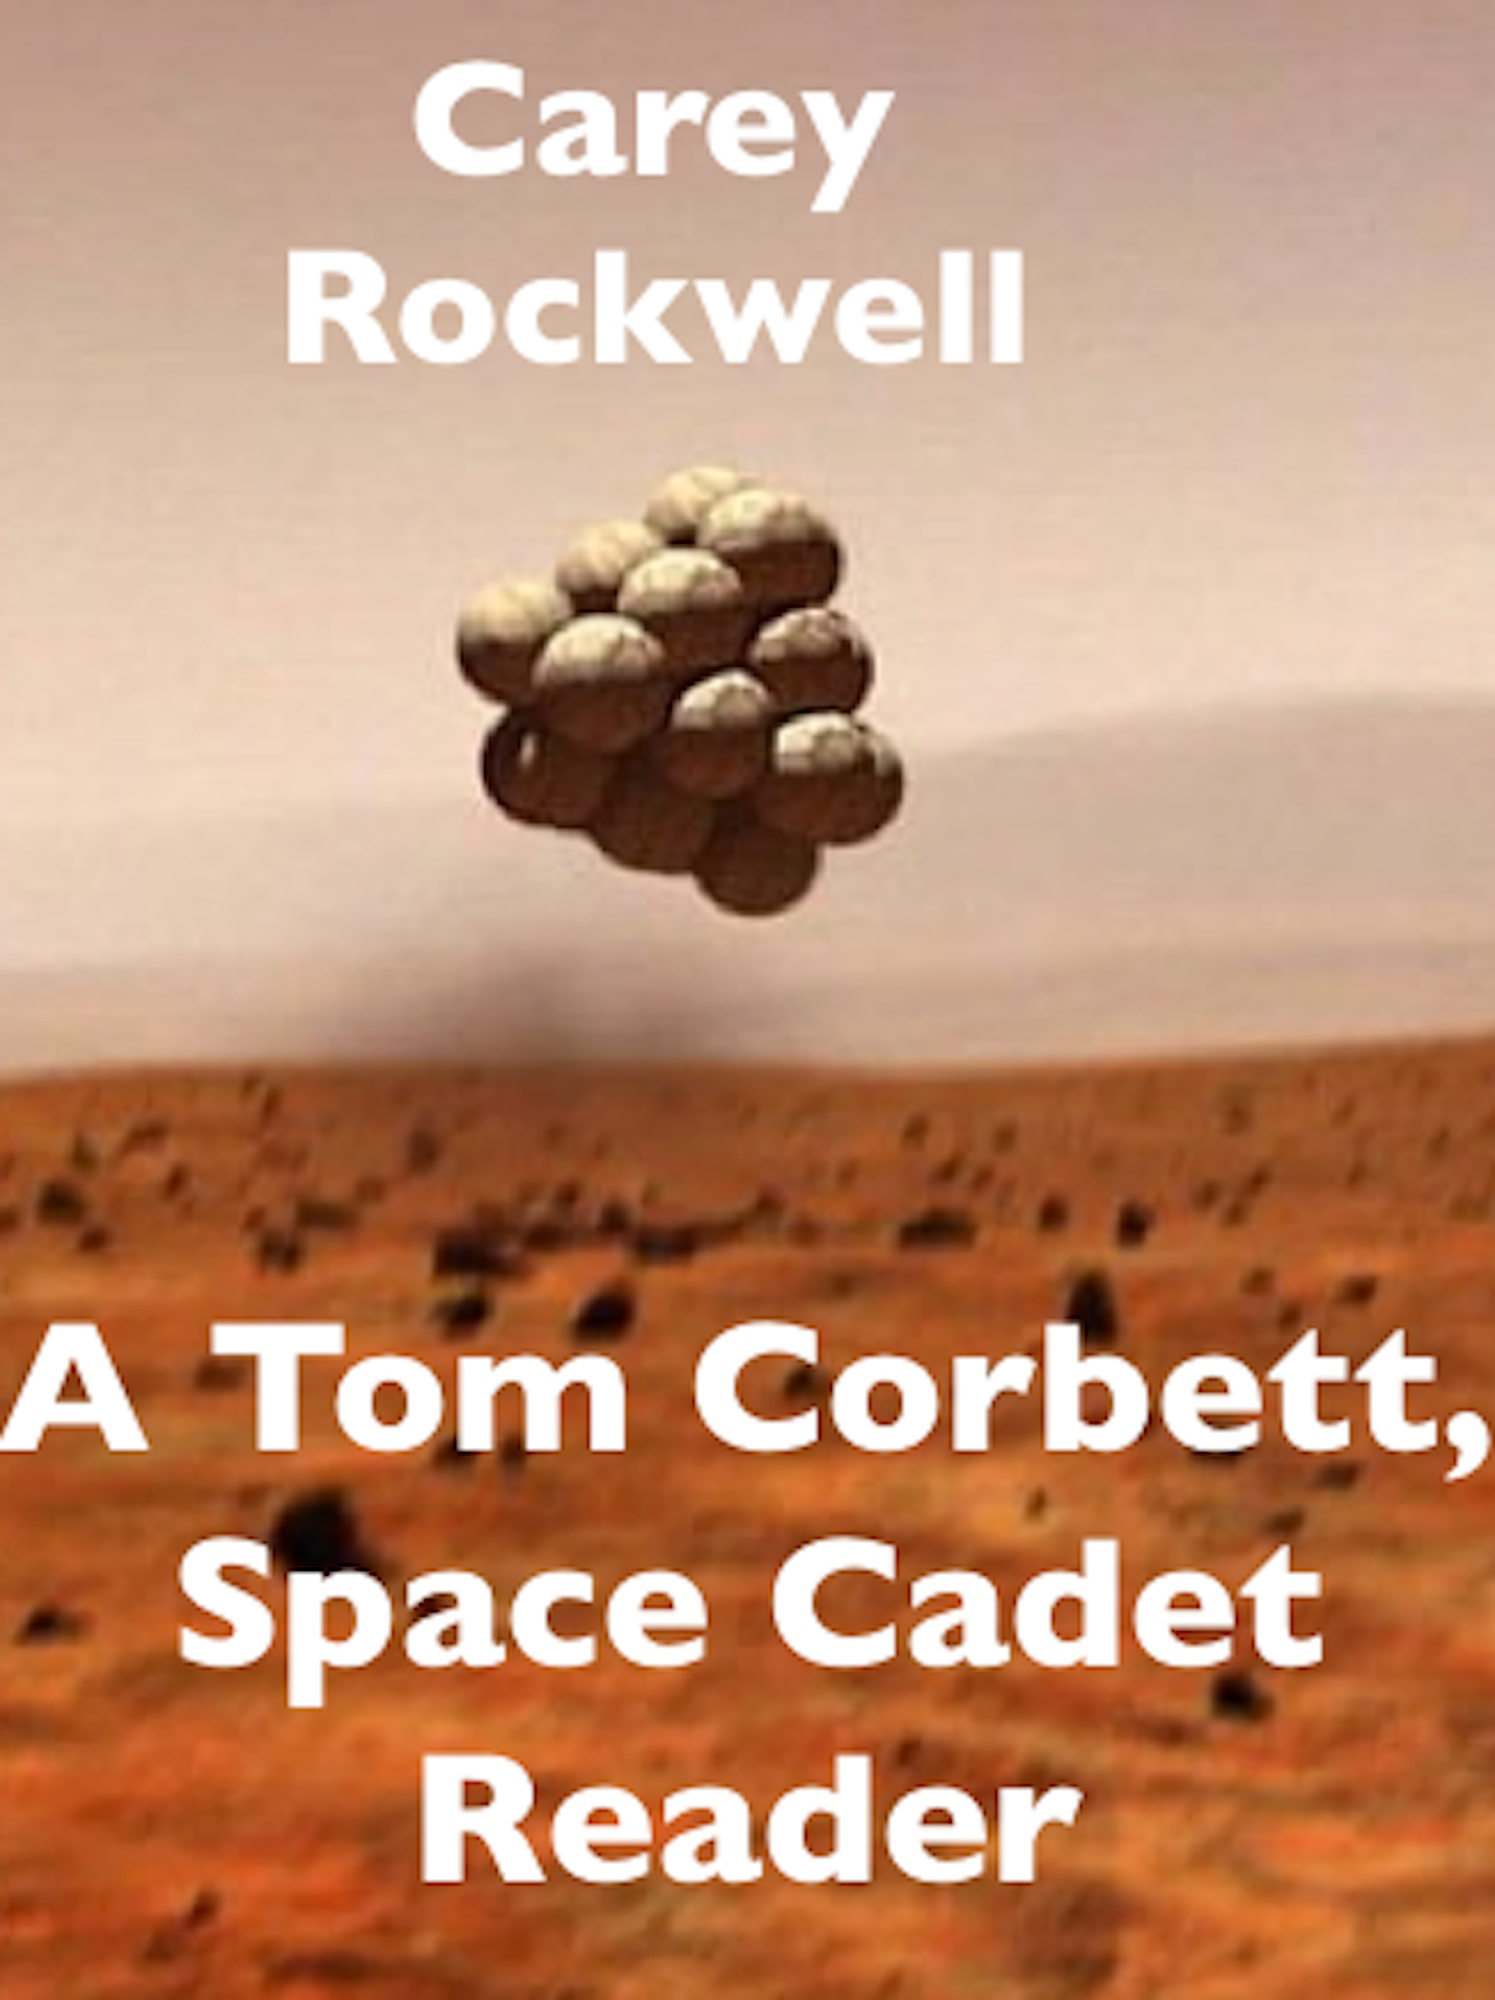 A Tom Corbett, Space Cadet Reader